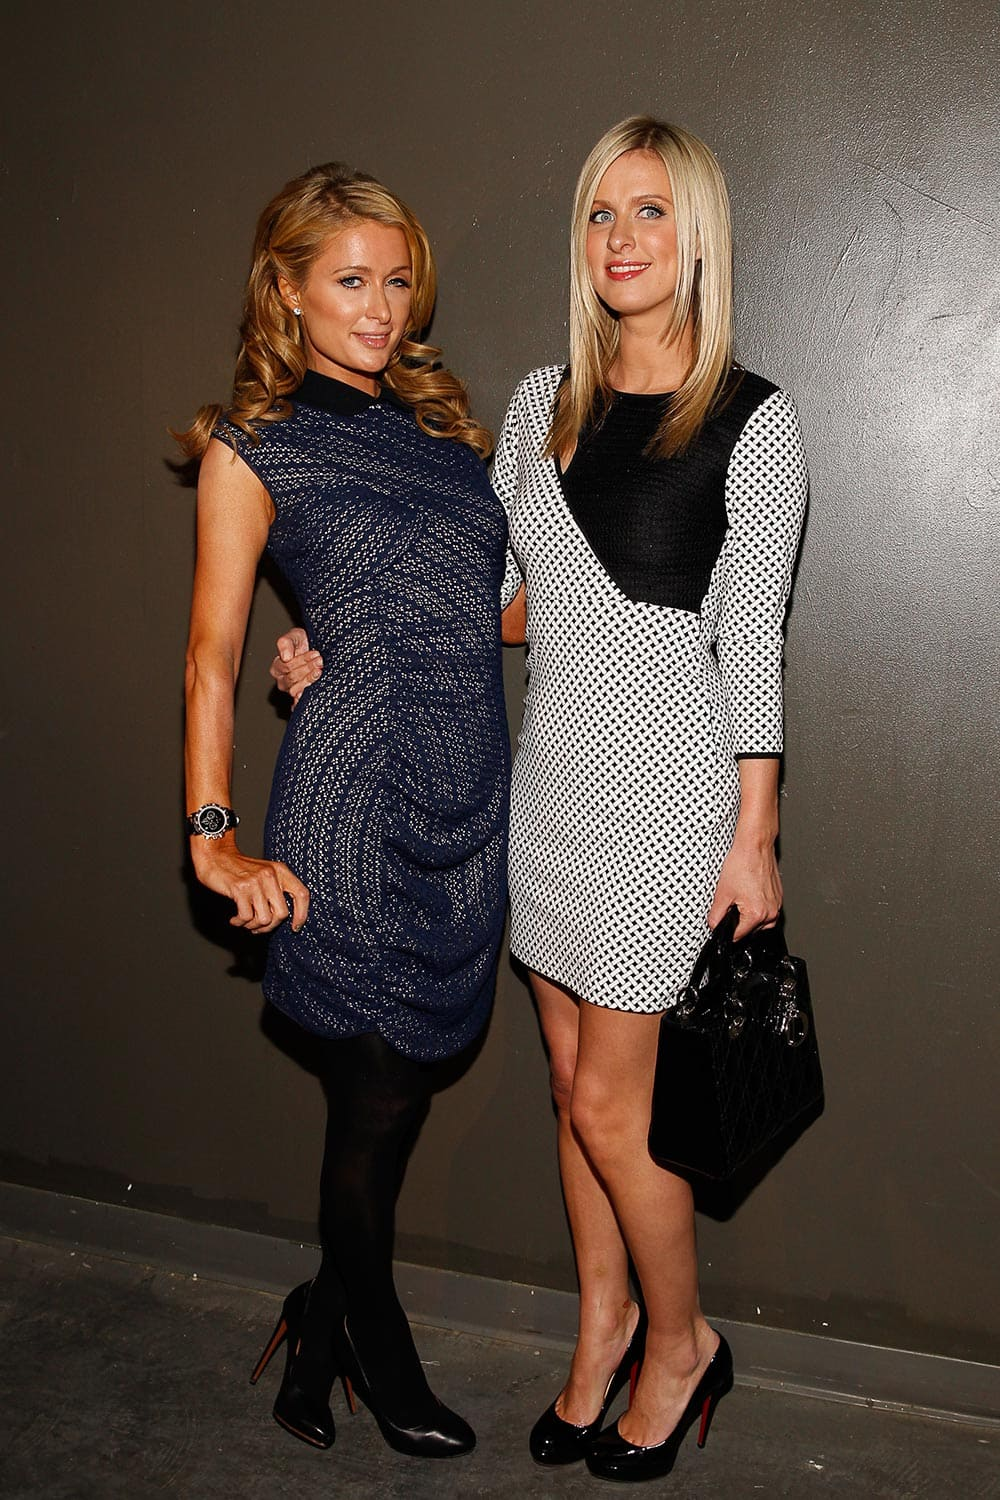 Paris Hilton and Nicky Hilton attend MBFW 2014 Fall/Winter Charlotte Ronson presentation, in New York.